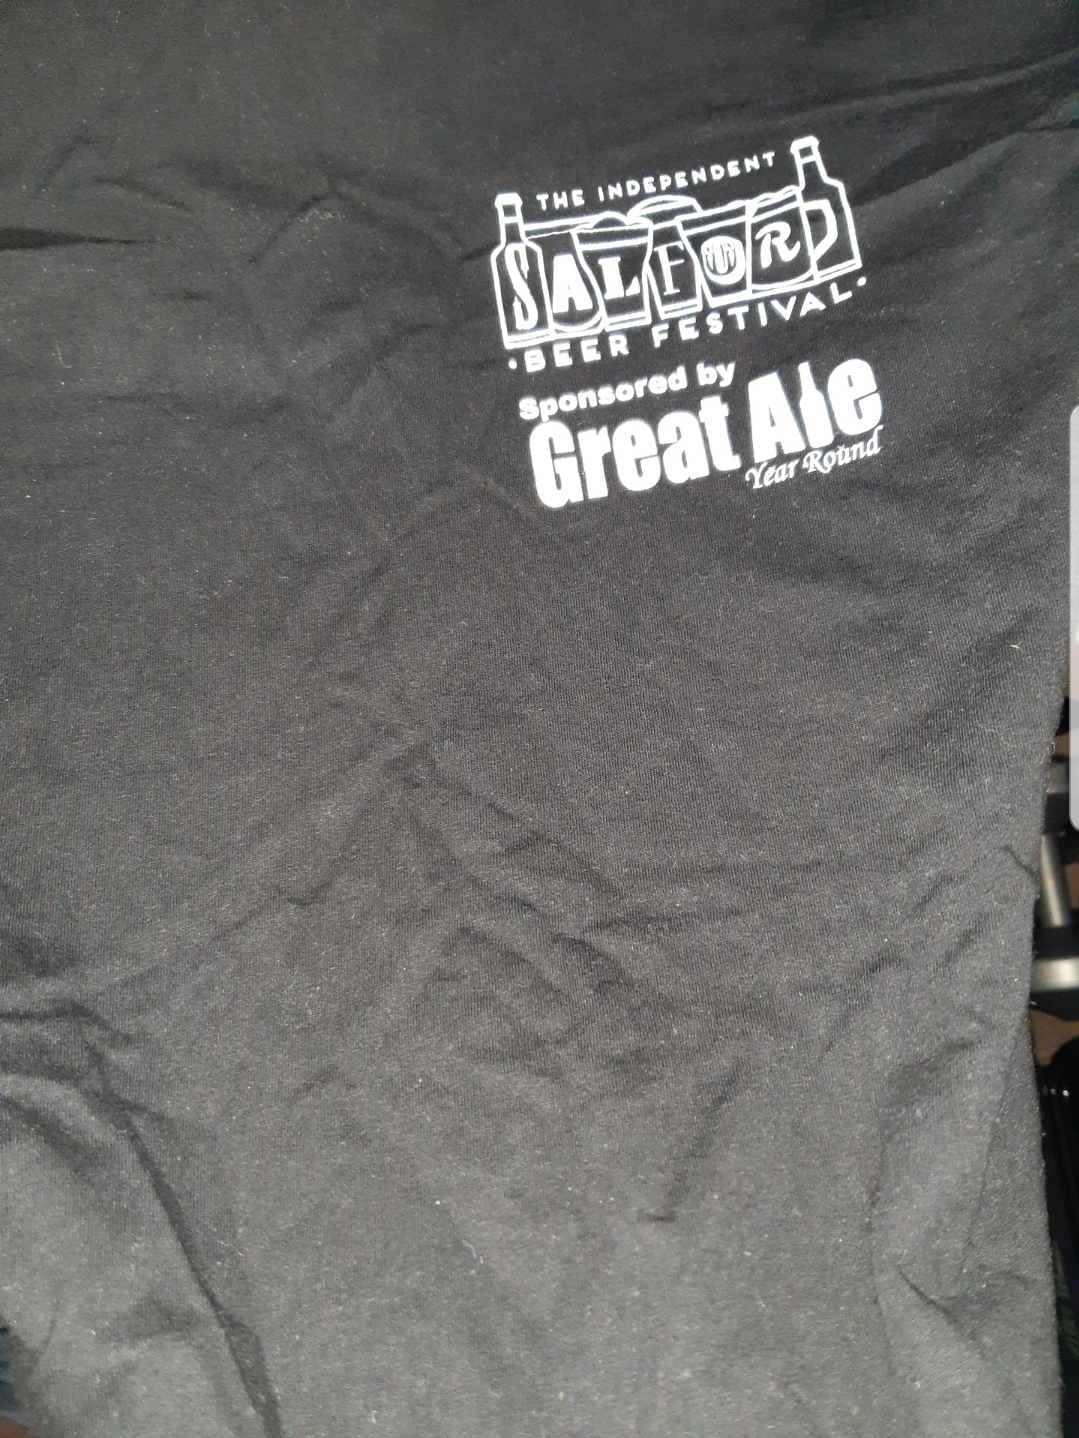 Oh. My. Days. An original ISBF1 t-shirt! A rarity!!!